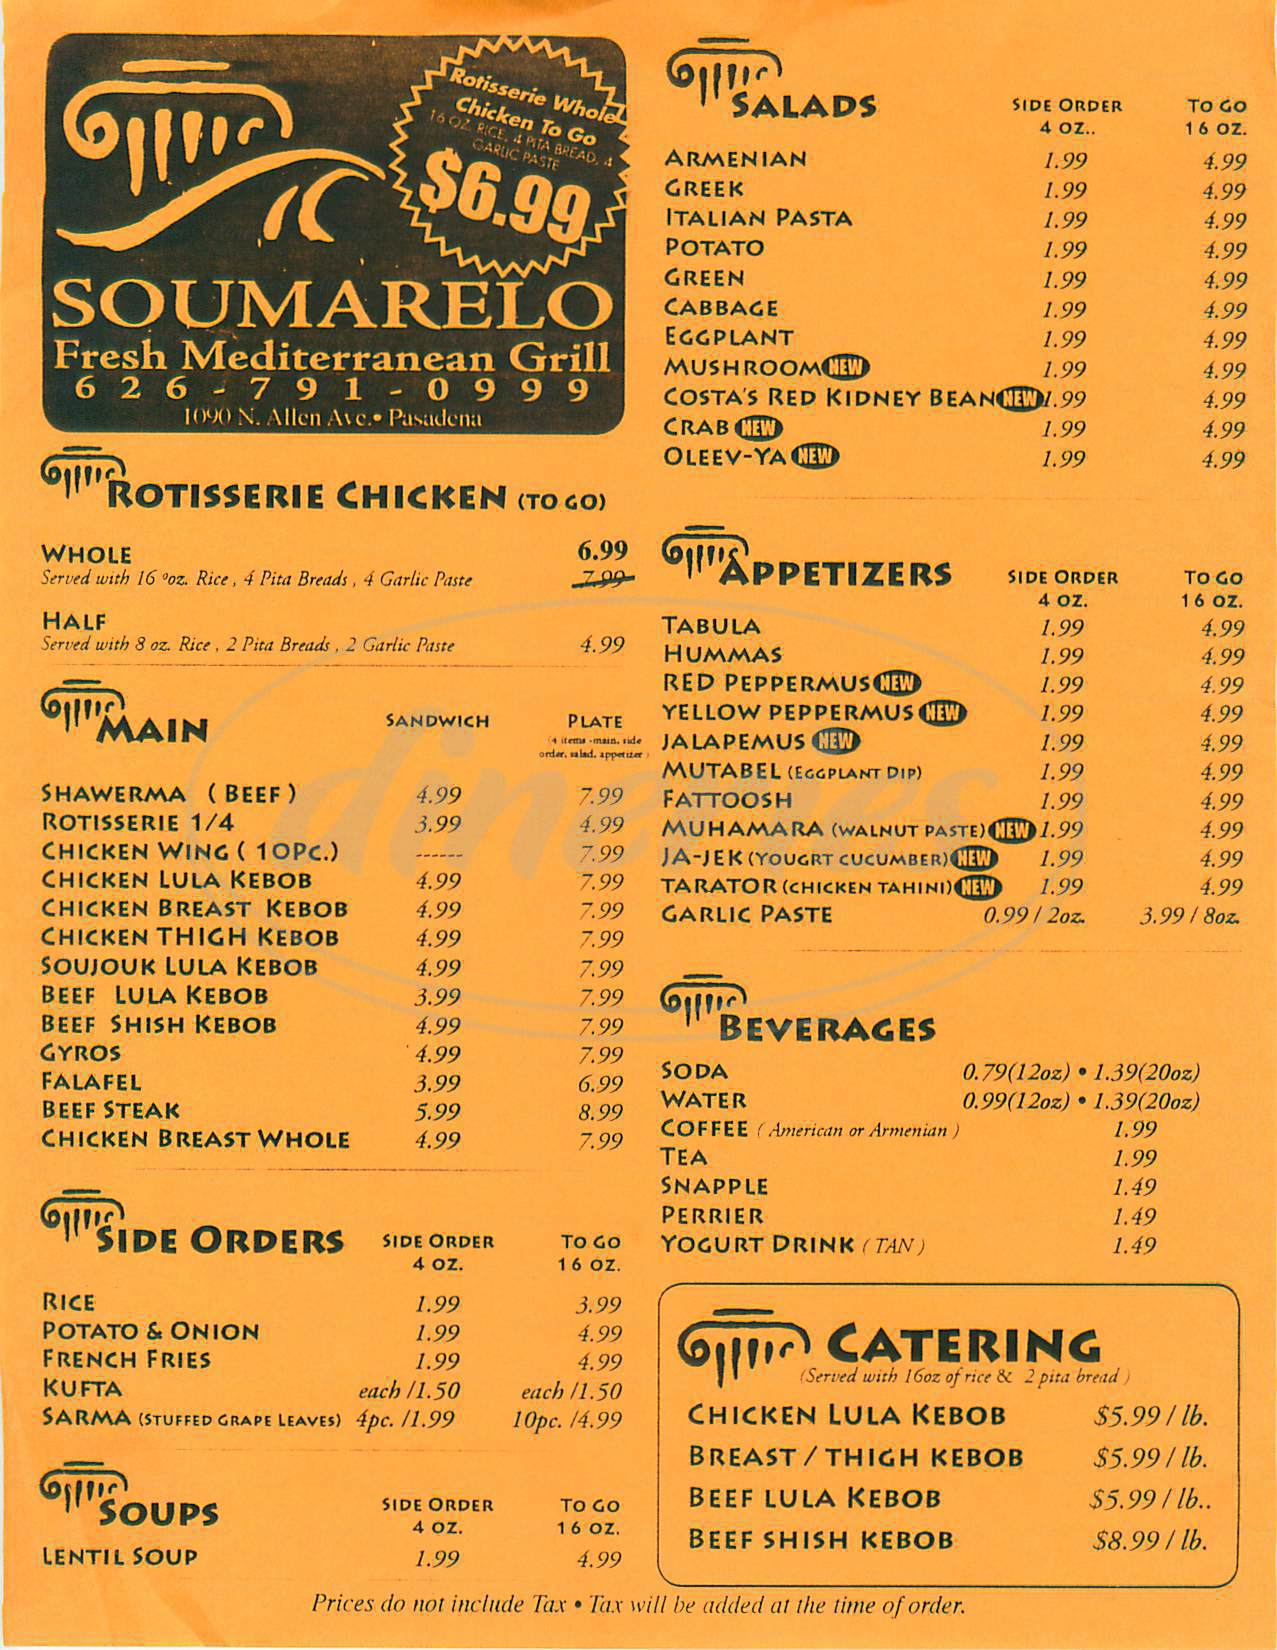 menu for Soumarelo Fresh Mediterranean Grill